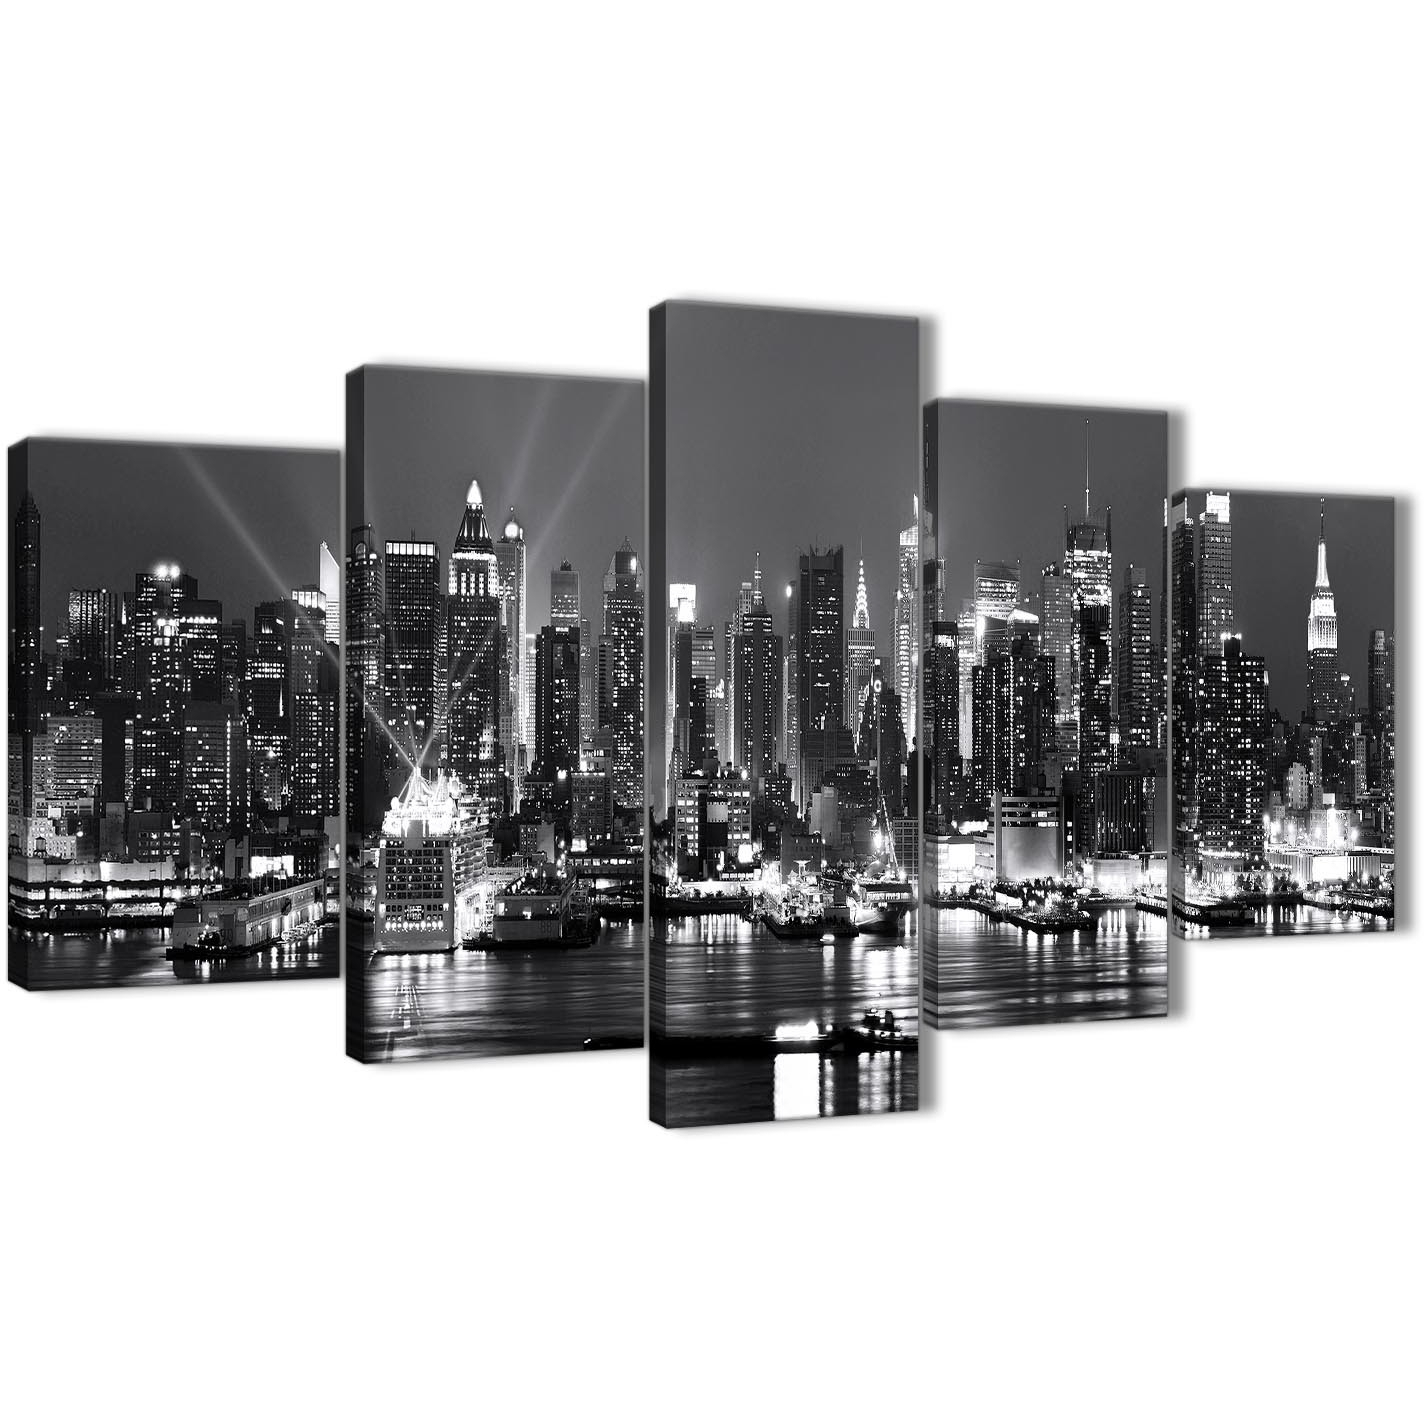 5 Panel Landscape Canvas Wall Art Prints – New York Hudson River In 2017 New York Wall Art (View 2 of 20)